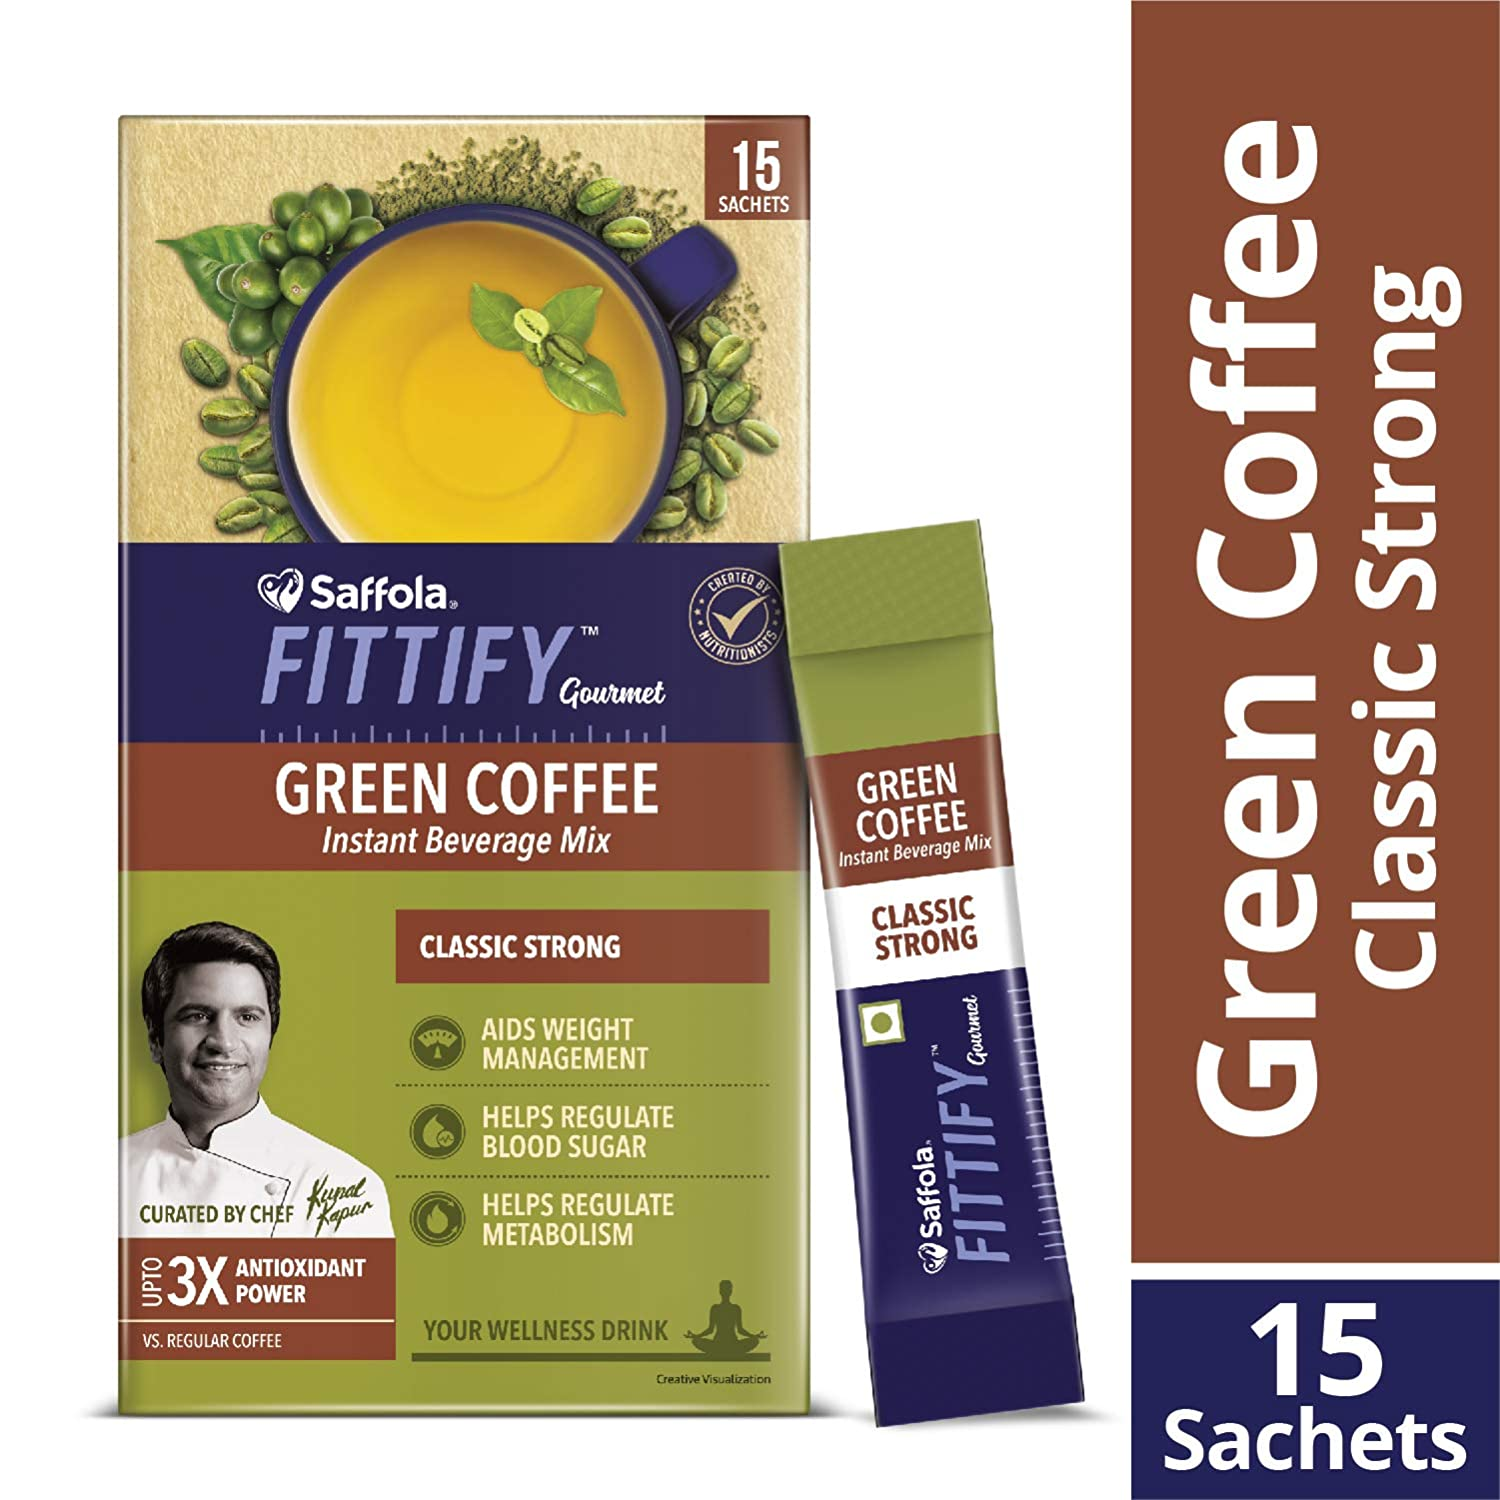 Saffola FITTIFY Gourmet Green Coffee Instant Beverage Mix -